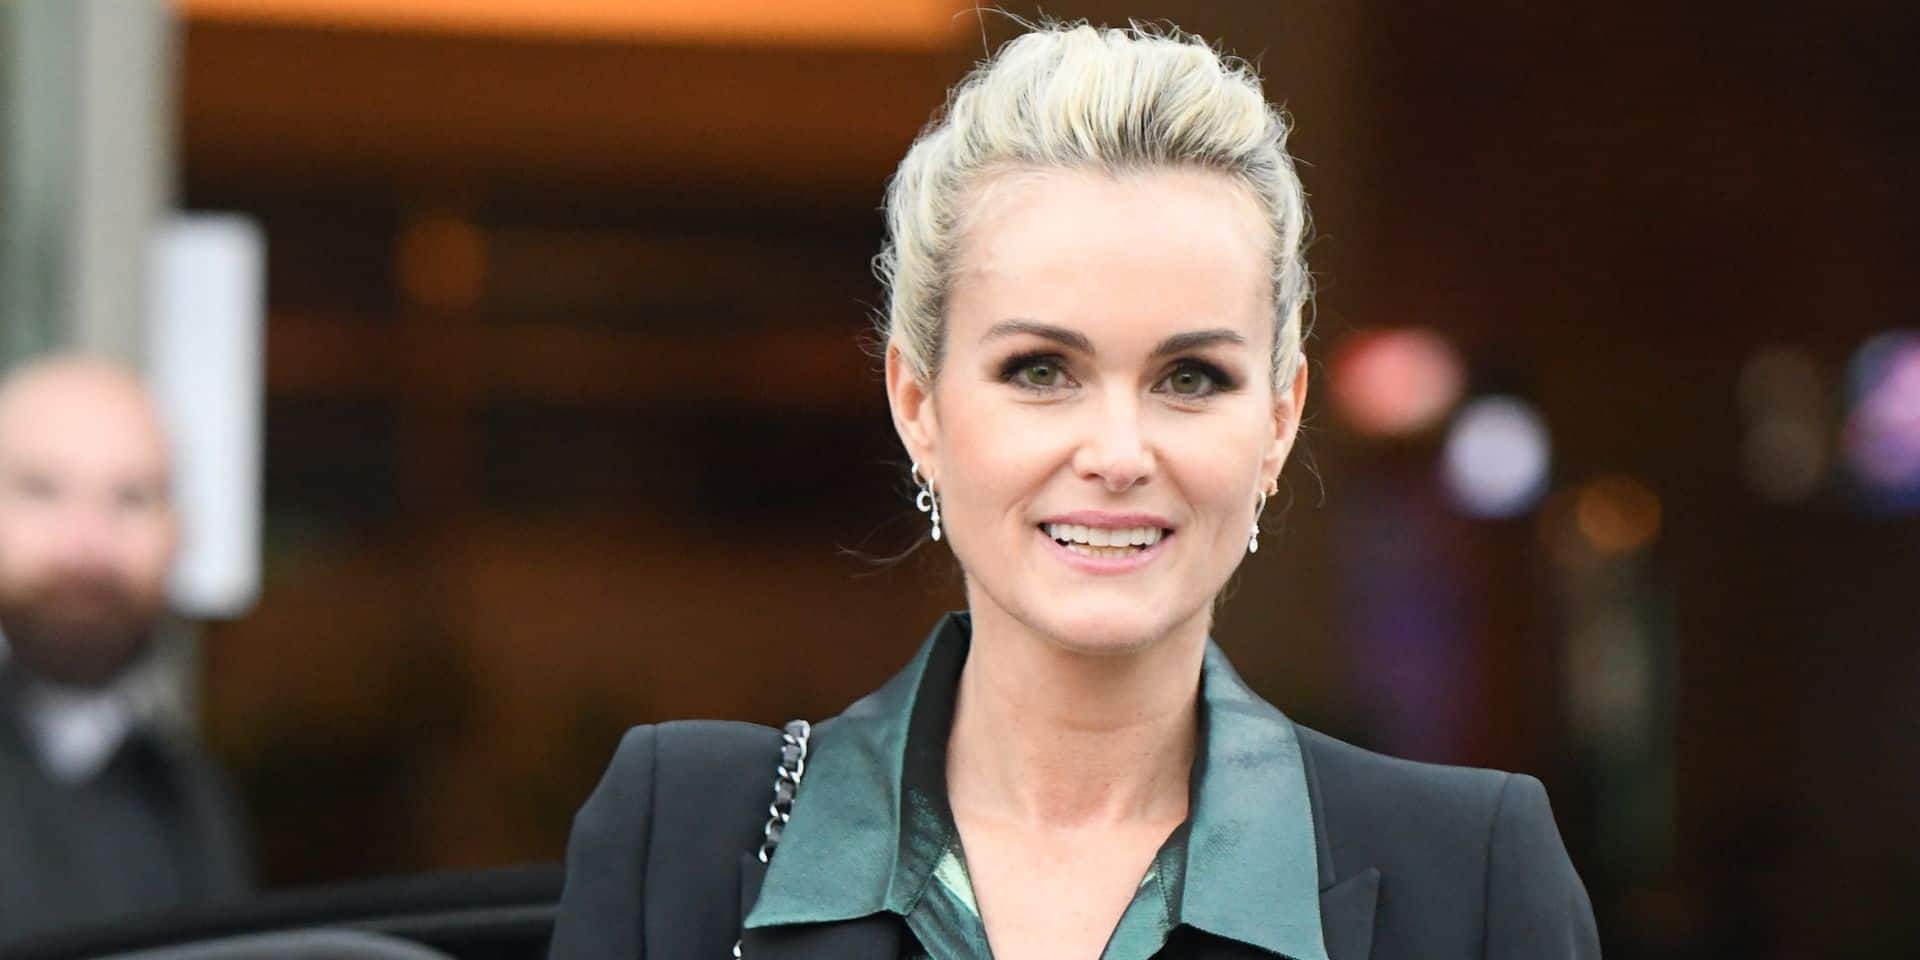 Laeticia Hallyday is seen leaving TF1 building after giving an interview to promote Johnny Hallyday's posthumous album release on October 19, 2018 in Paris, France. Photo by ABACAPRESS.COM Reporters / Abaca